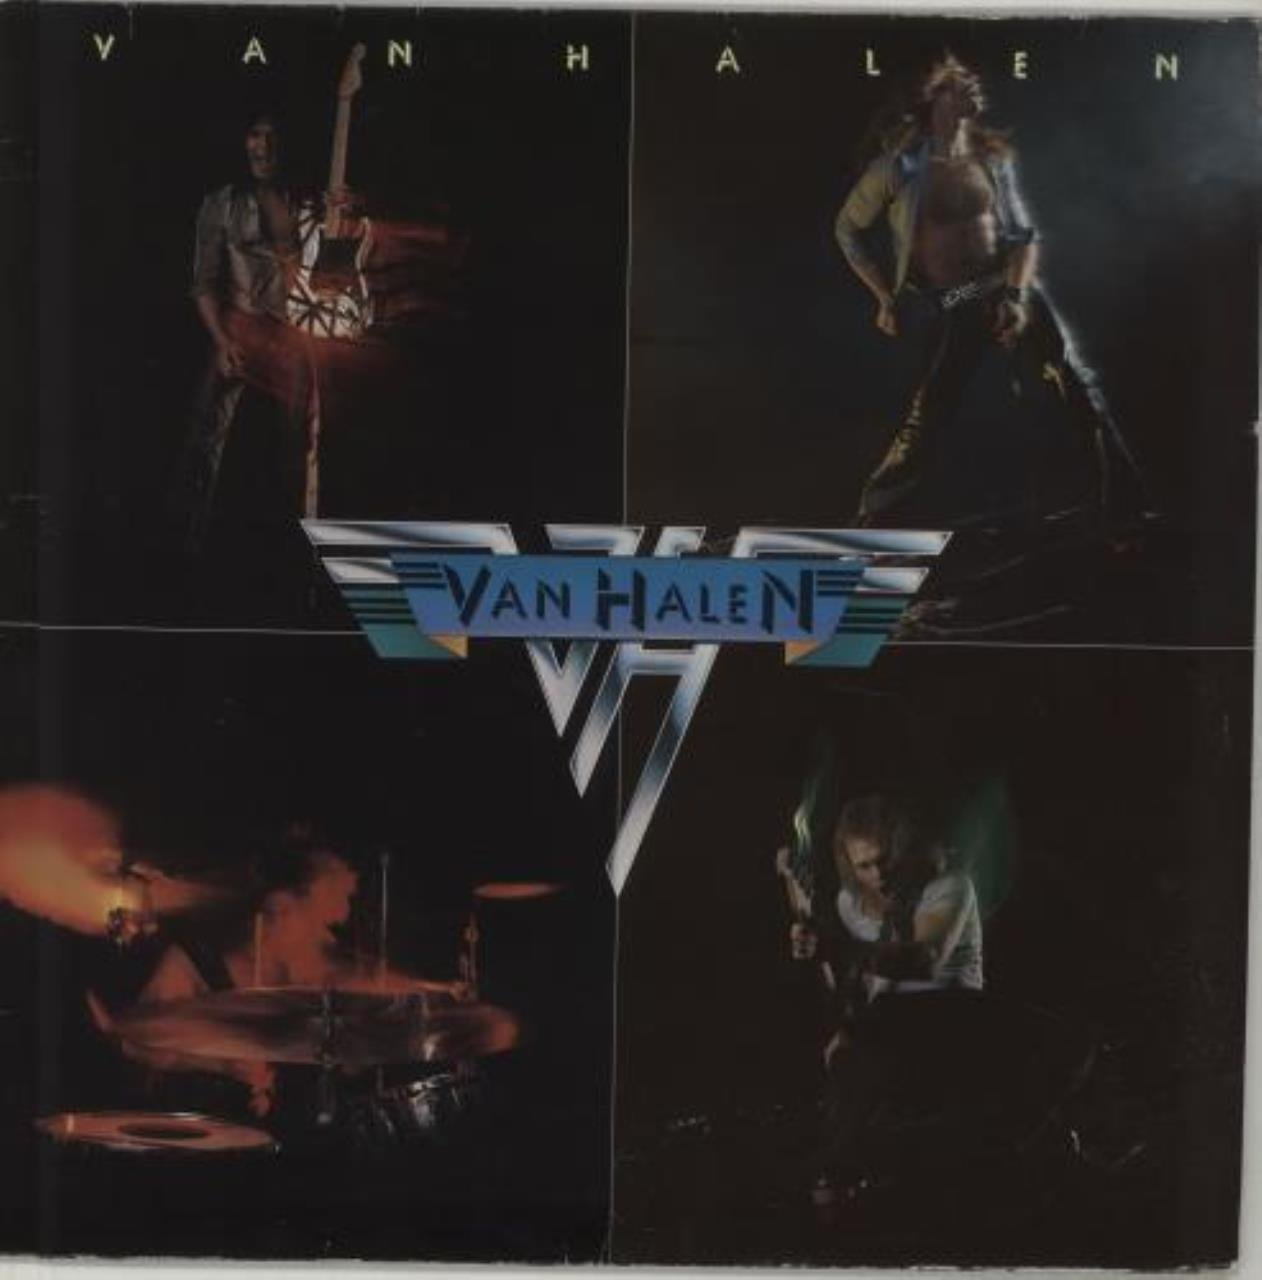 Same / Vinyl record : Van Halen: Amazon.es: Música